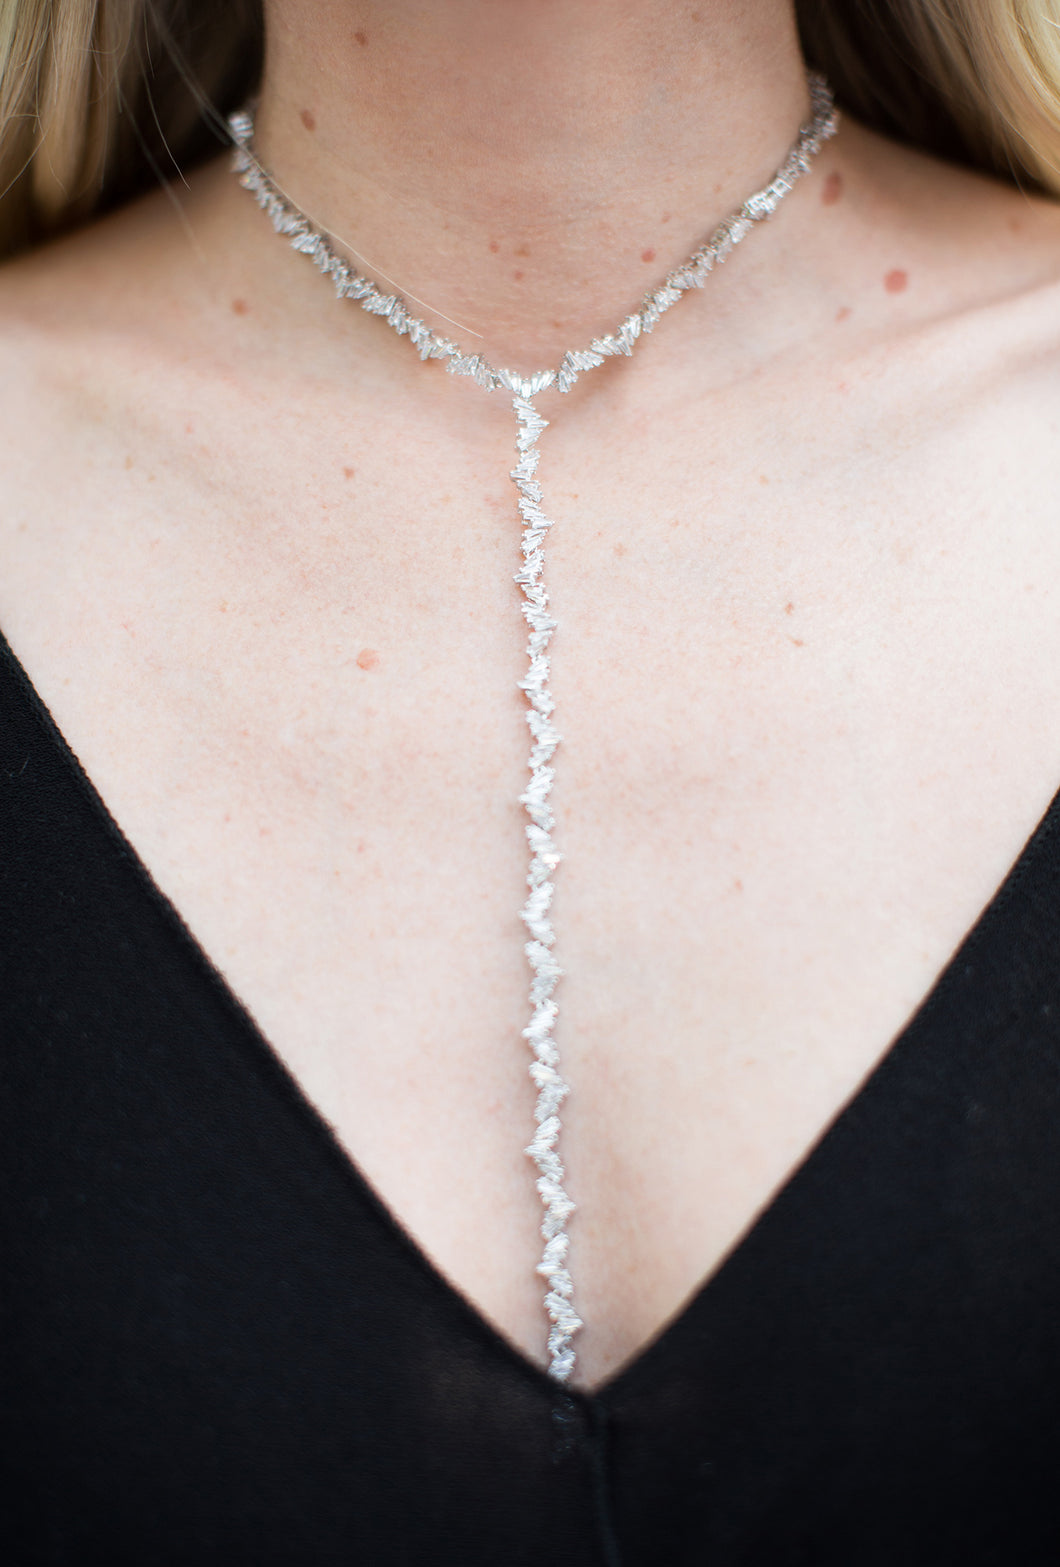 Hestia Lariet Necklace